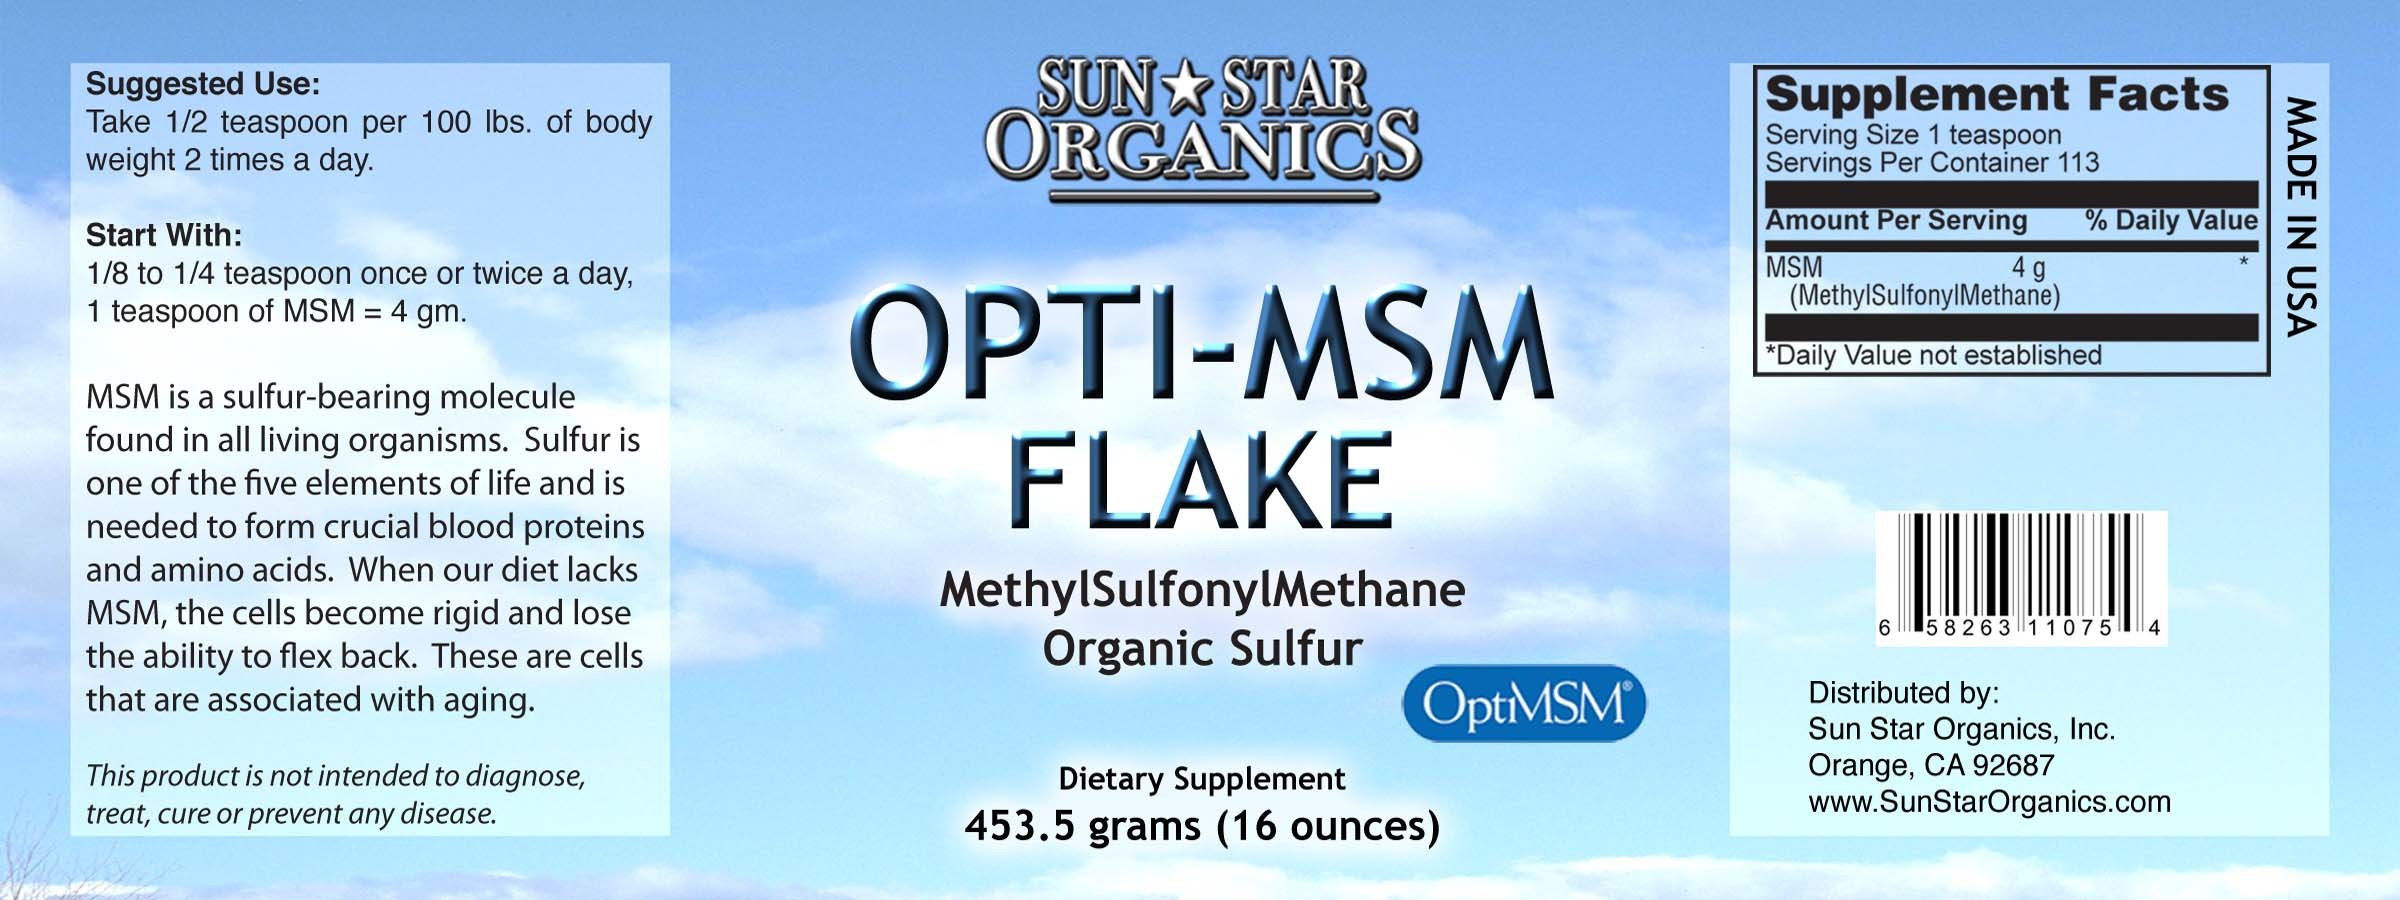 Sun Star Organics OptiMSM (Methylsulfonylmethane) Flake Powder 1 Lb. Natural Sulfur Supplement. Great for Hair, Skin and Nails. Relief for joint inflammation